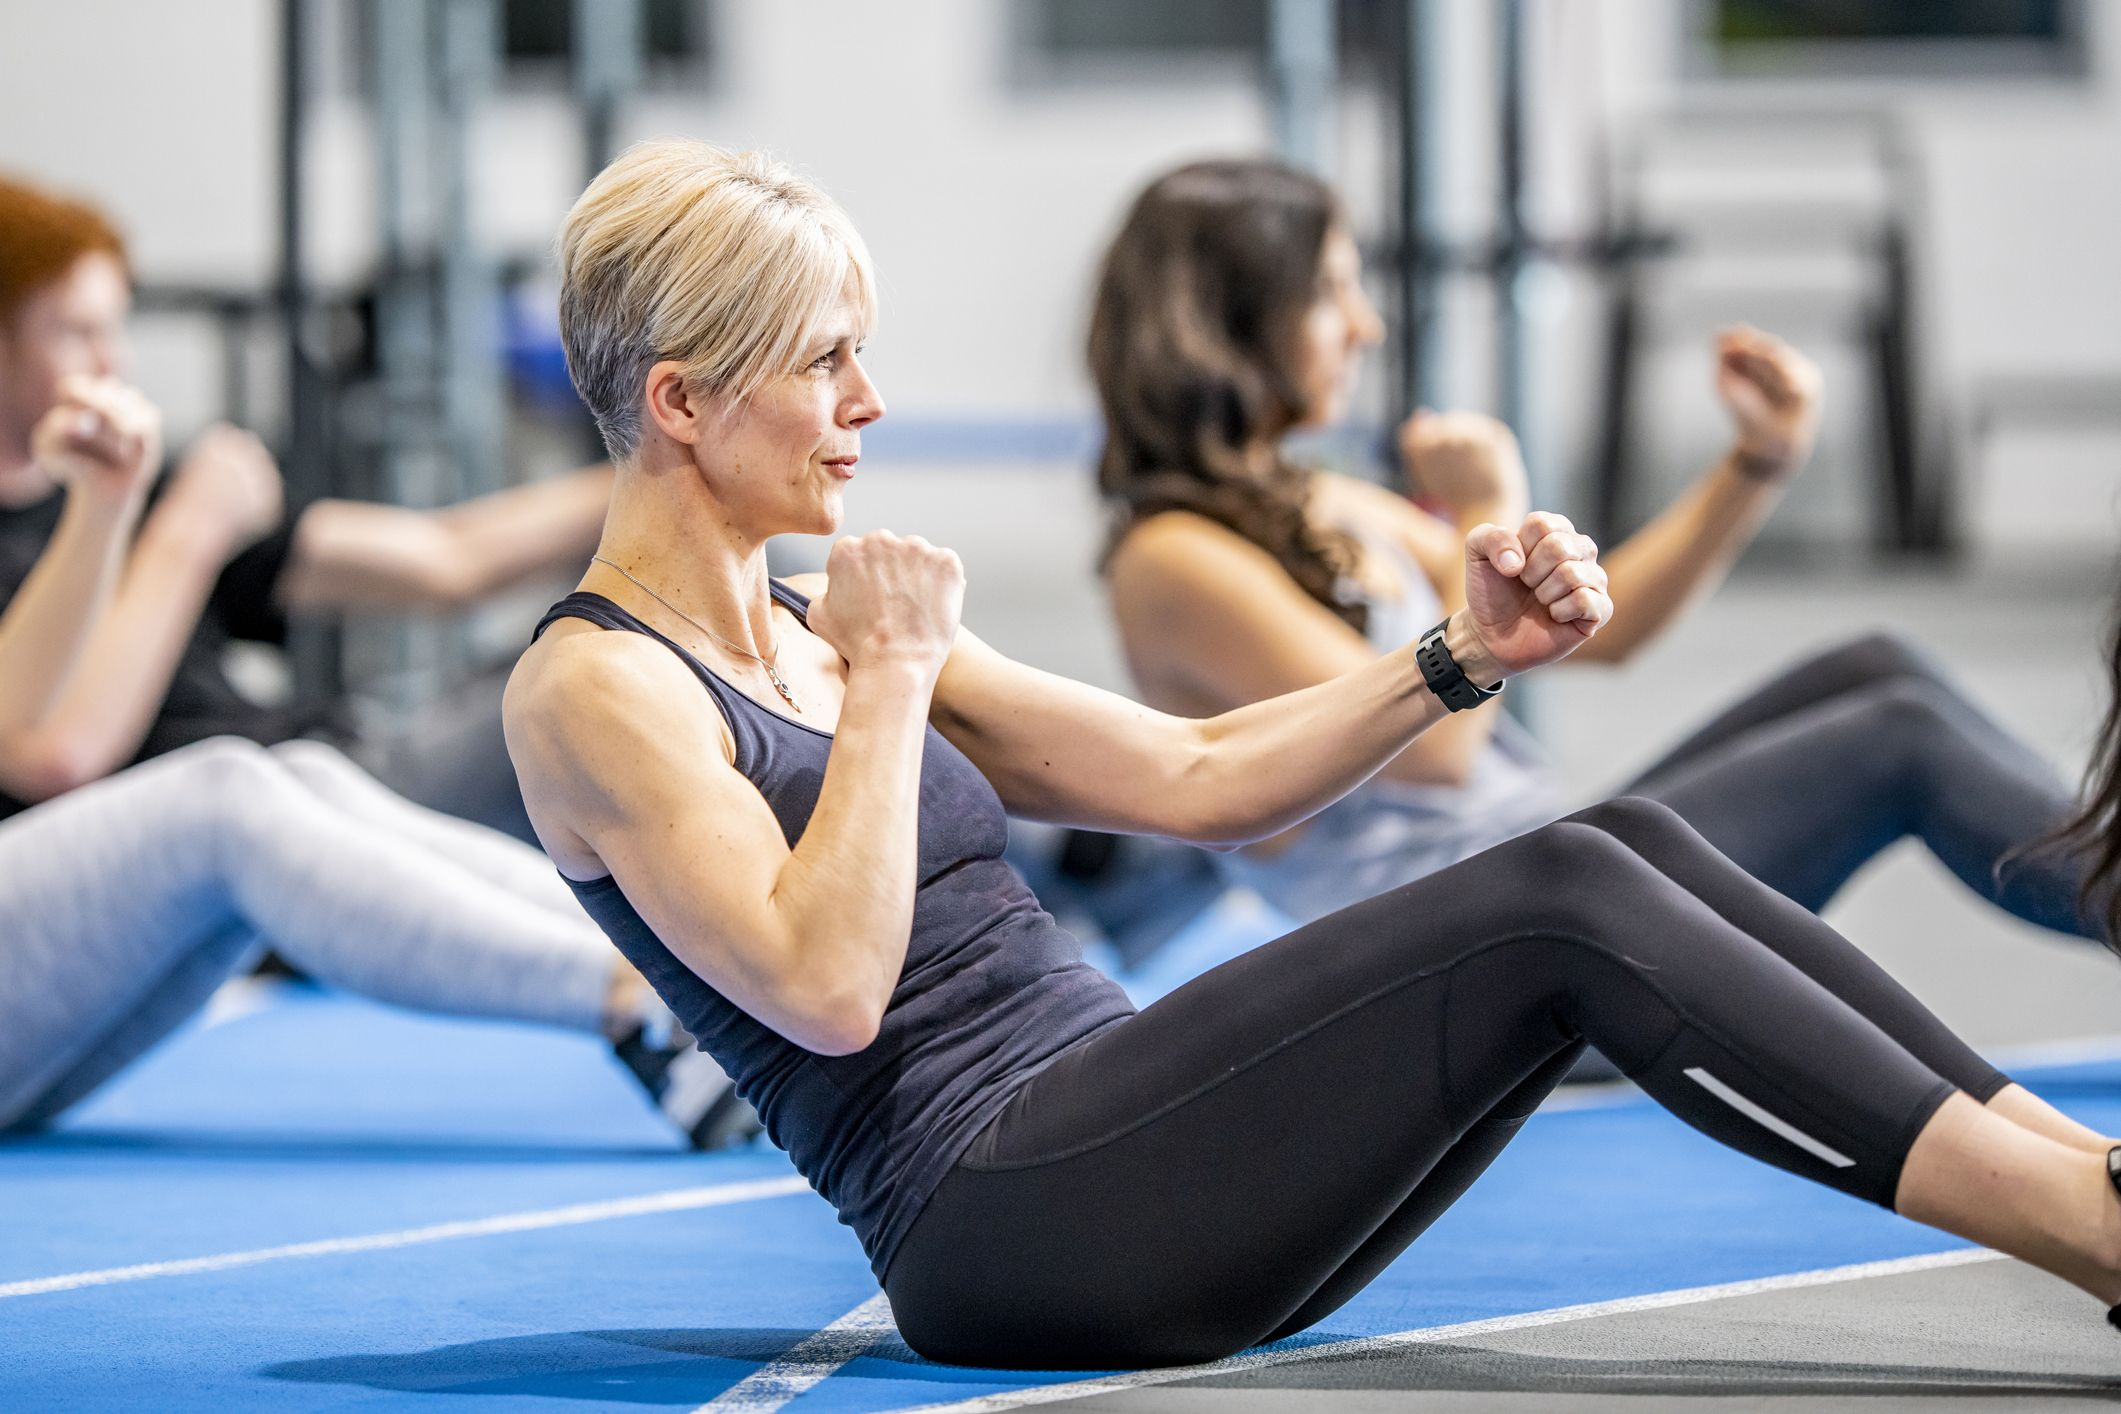 What Is Hot Pilates and Is It Good for Losing Weight?